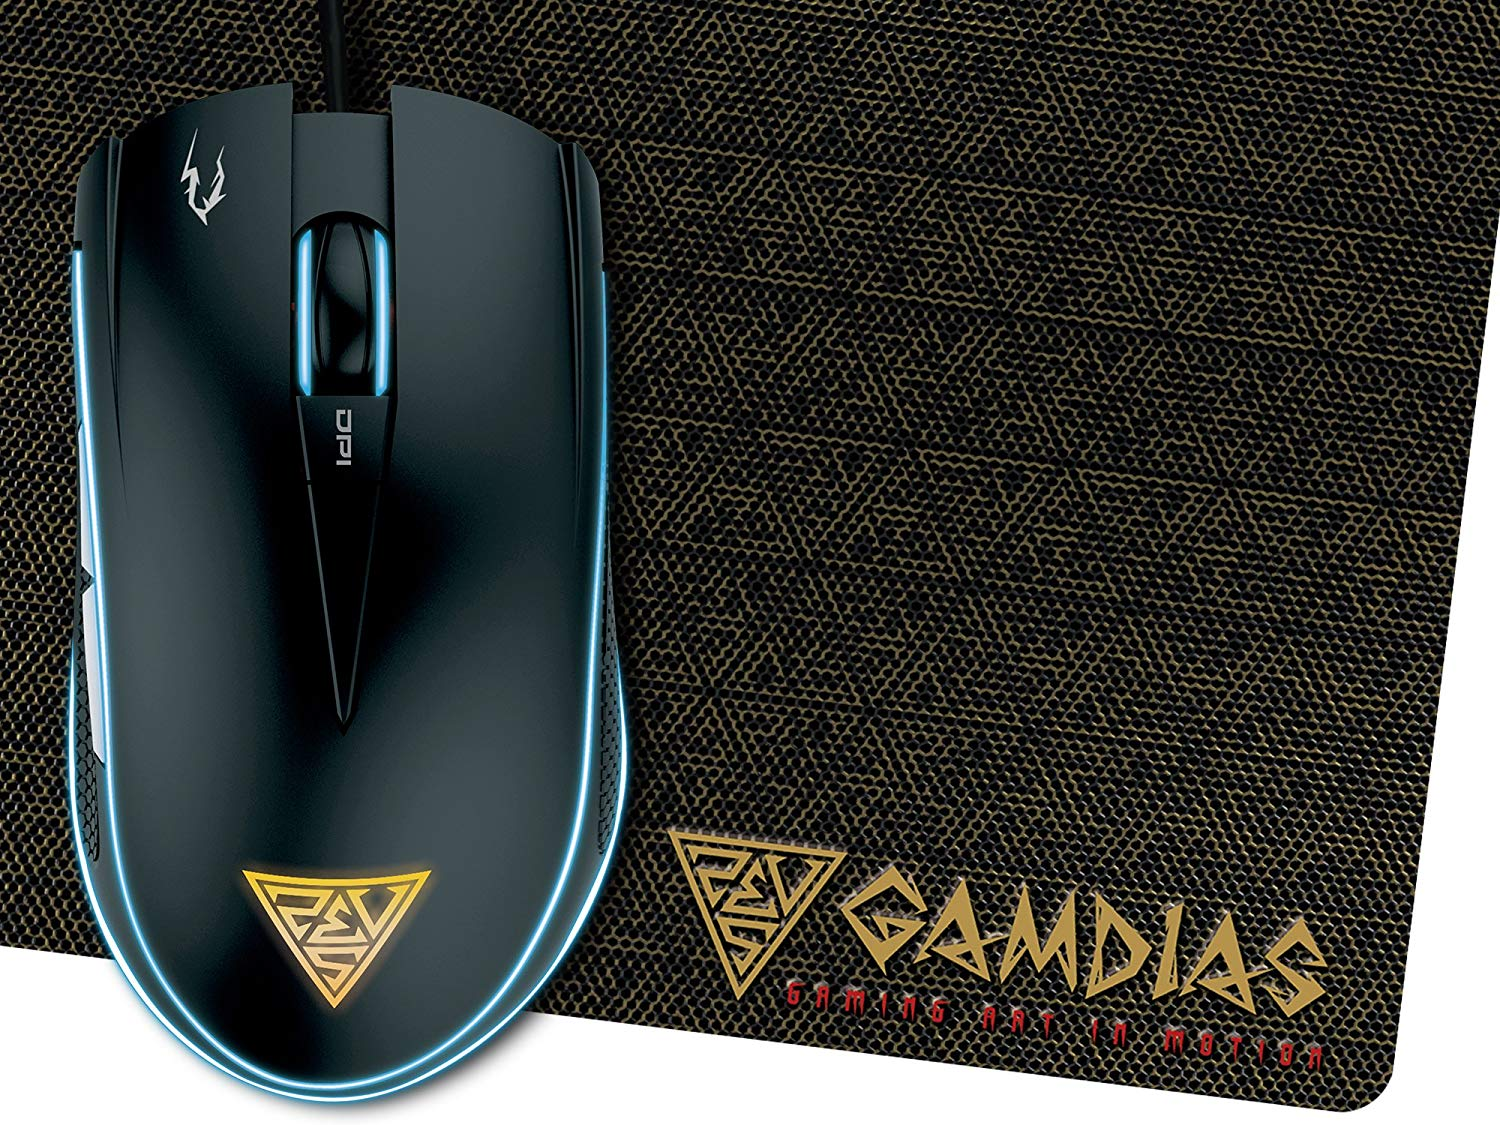 GAMDIAS Zeus E1 Dual RGB Gaming Mouse with Mouse Pad